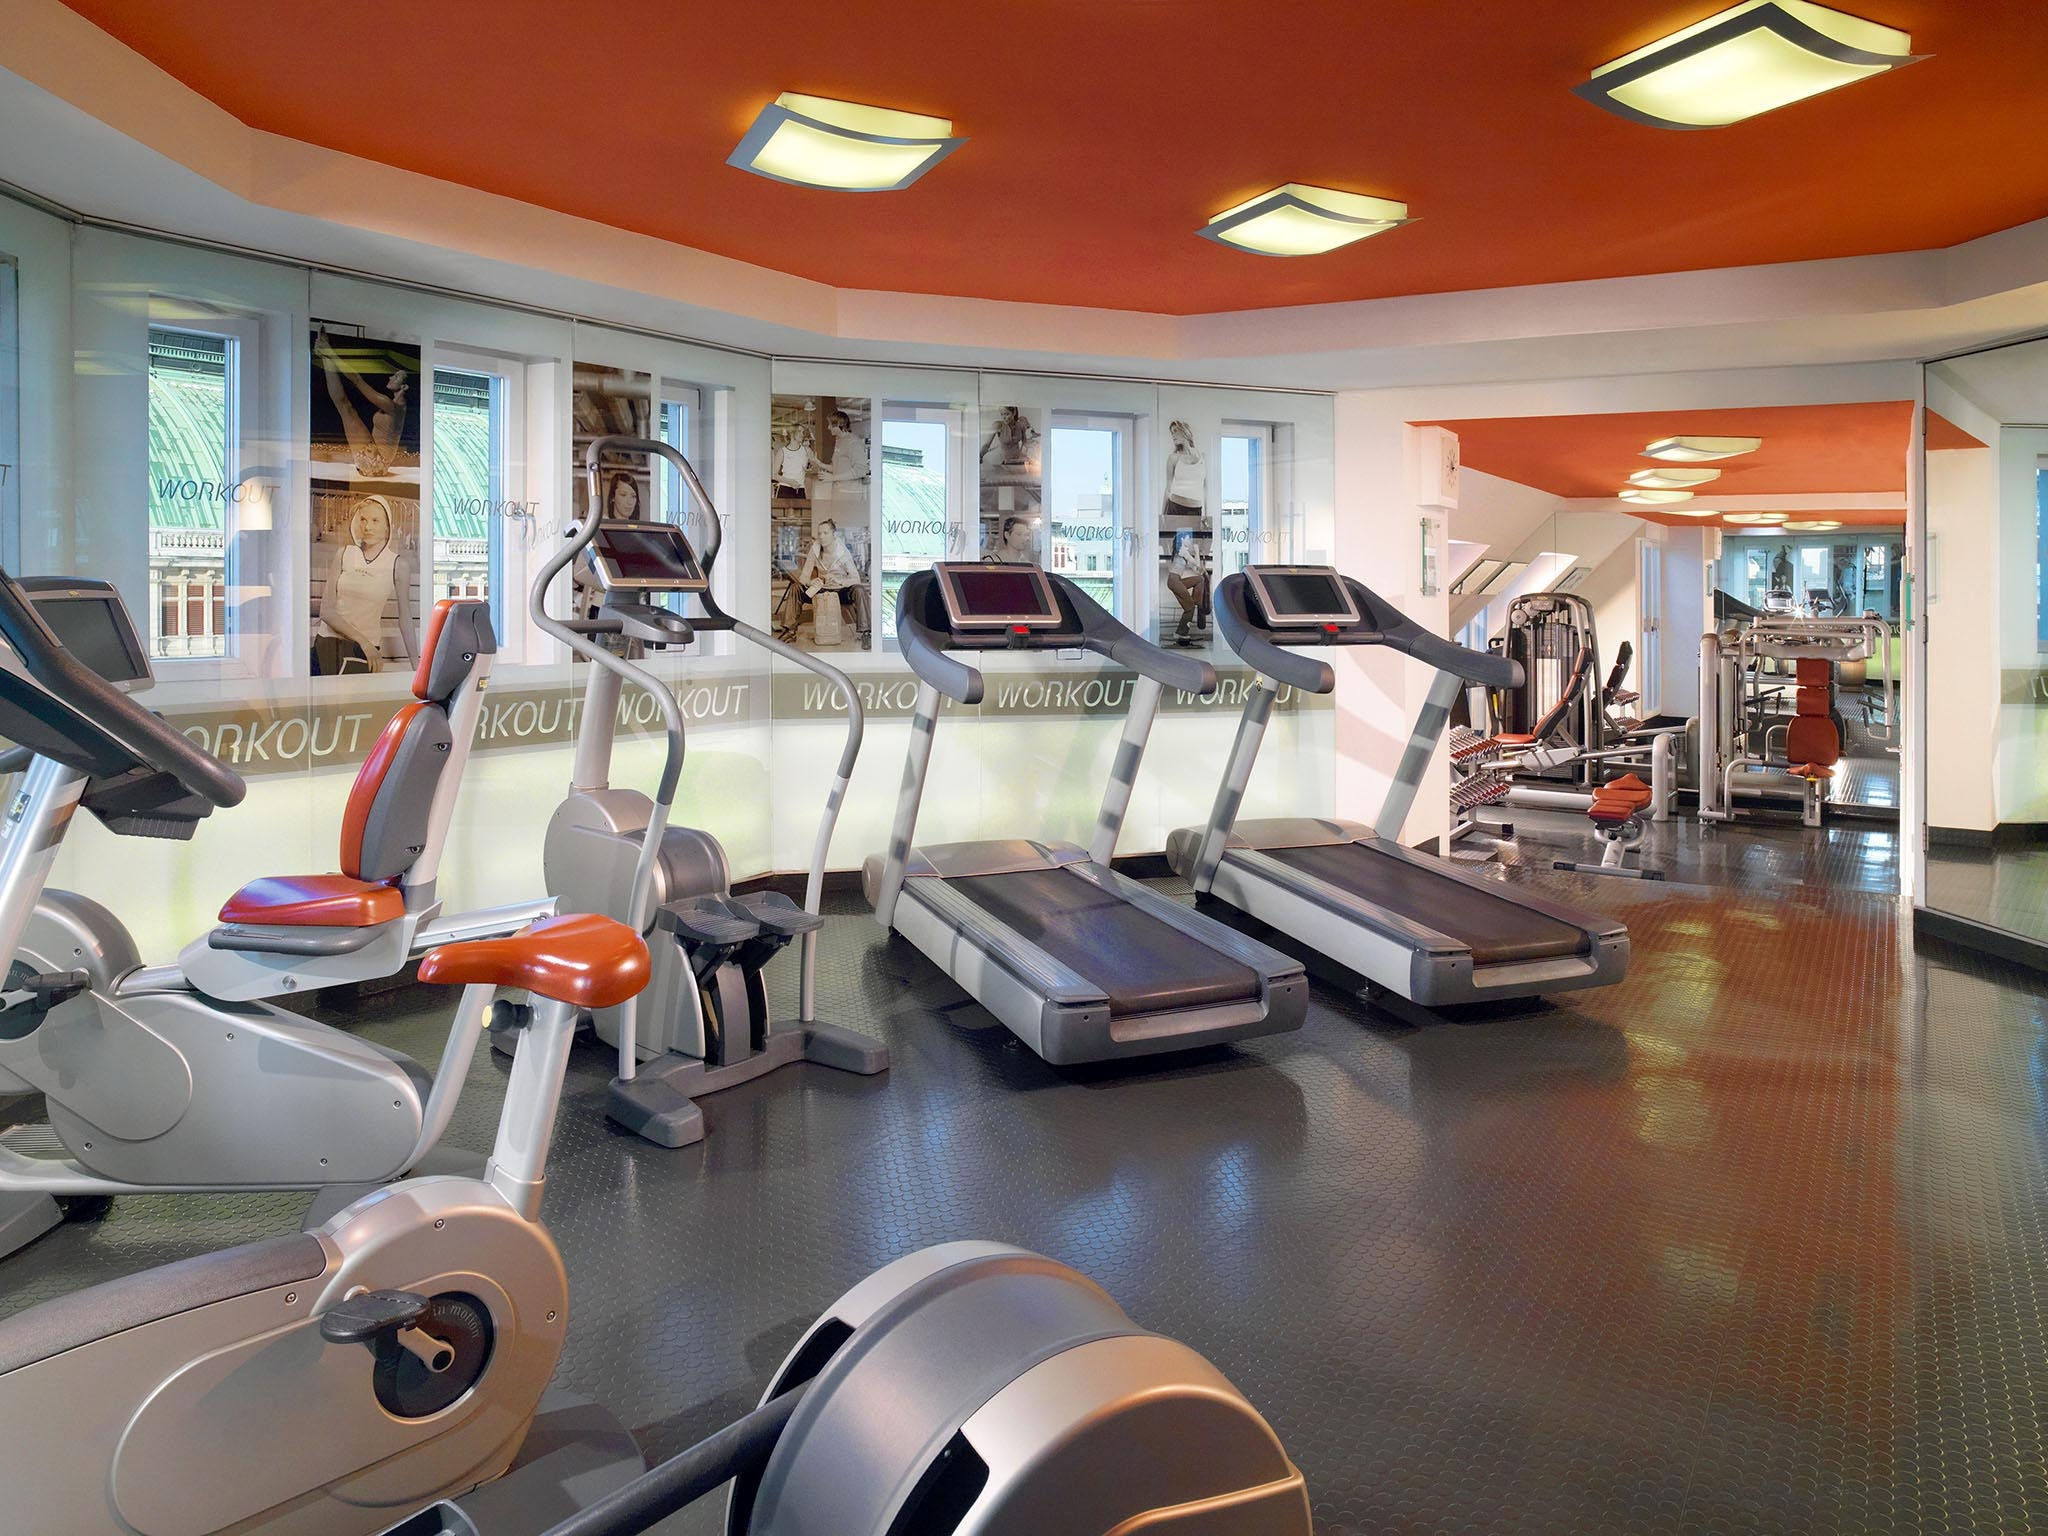 Fitness Center im Hotel Bristol Wien